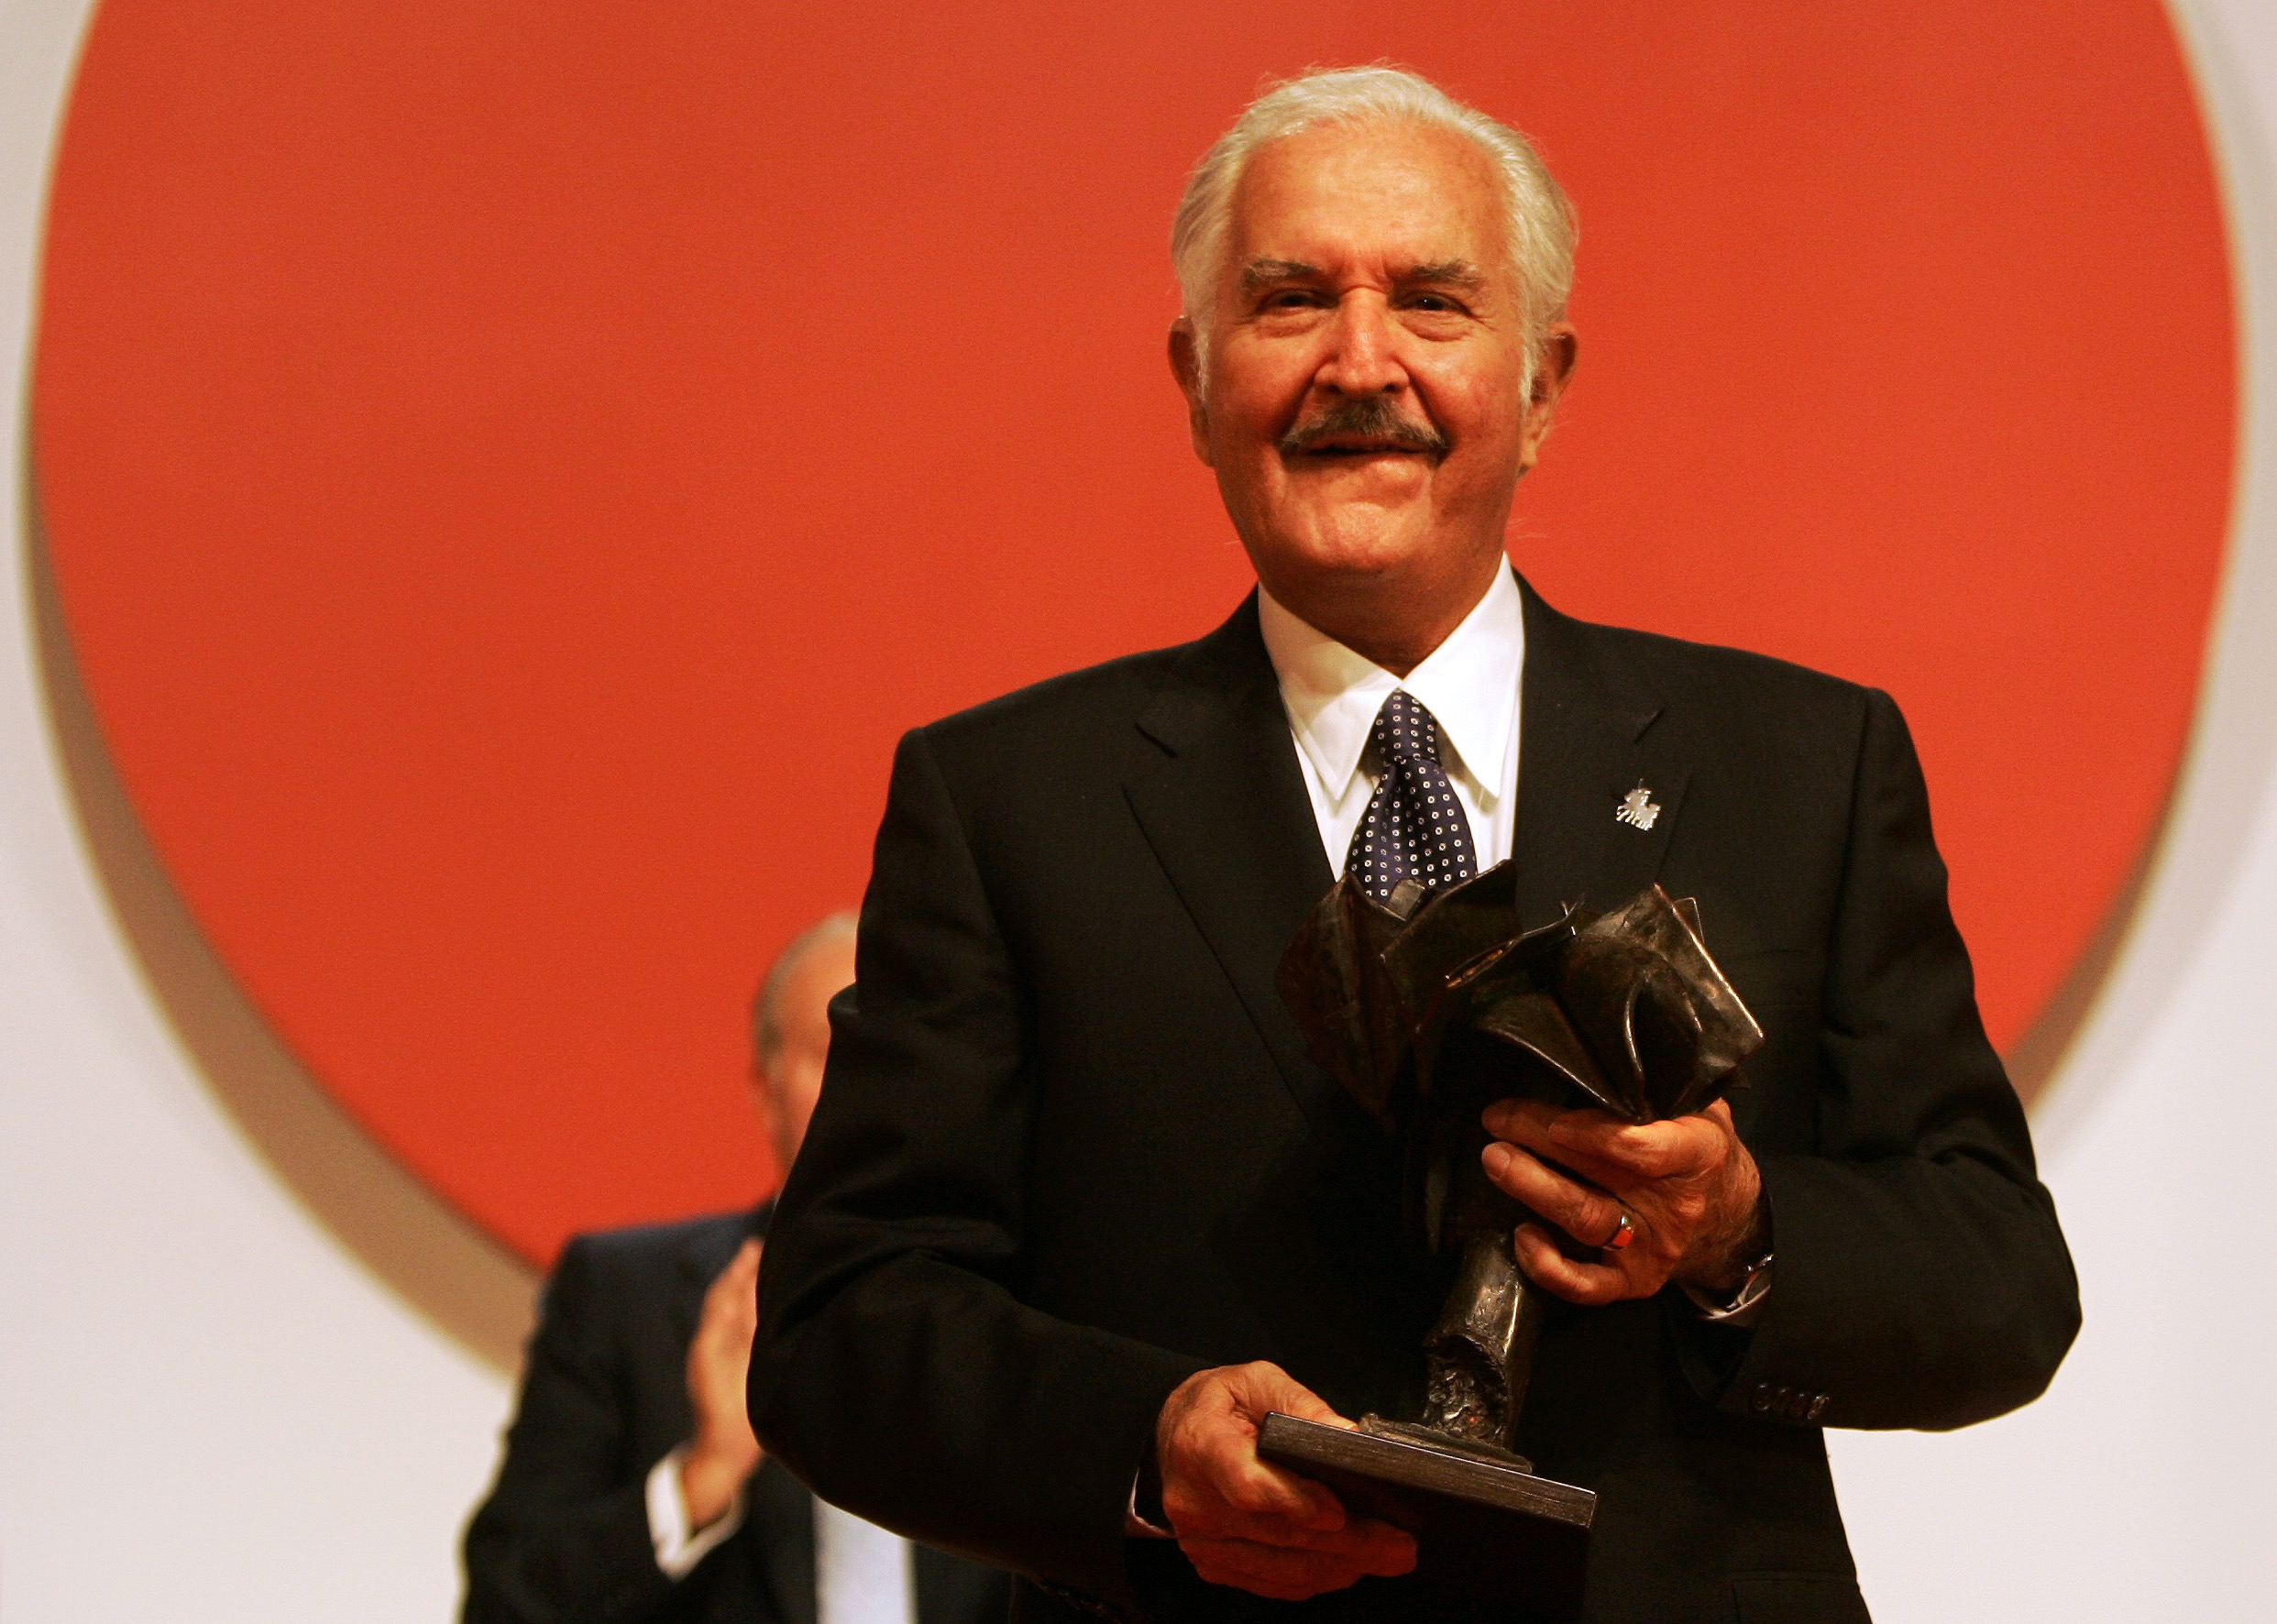 Mexican writer Carlos Fuentes seen with the Don Quijote de la Mancha international prize, after receiving it from Spanish King Juan Carlos, not seen, in Toledo, Spain, Monday, Oct. 13, 2008. (AP Photo/Victor R. Caivano)